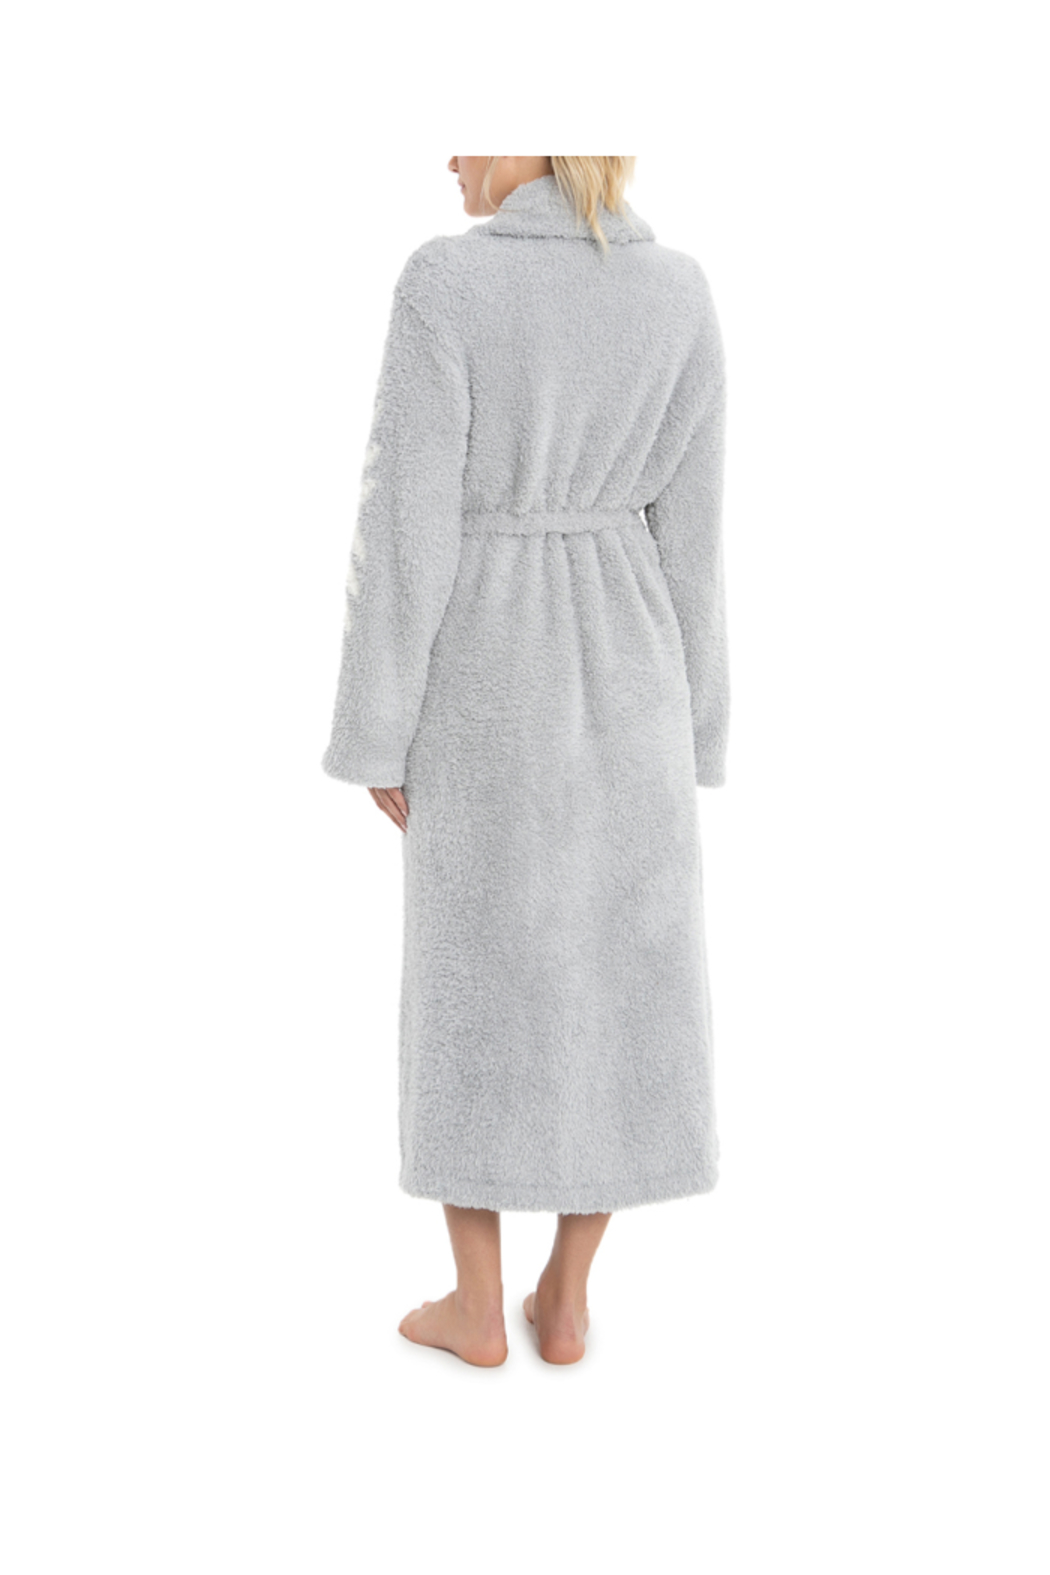 Barefoot Dreams CC INSPIRATION ROBE-OCEAN(BELIEVE IN DREAMS) - Front Full Image